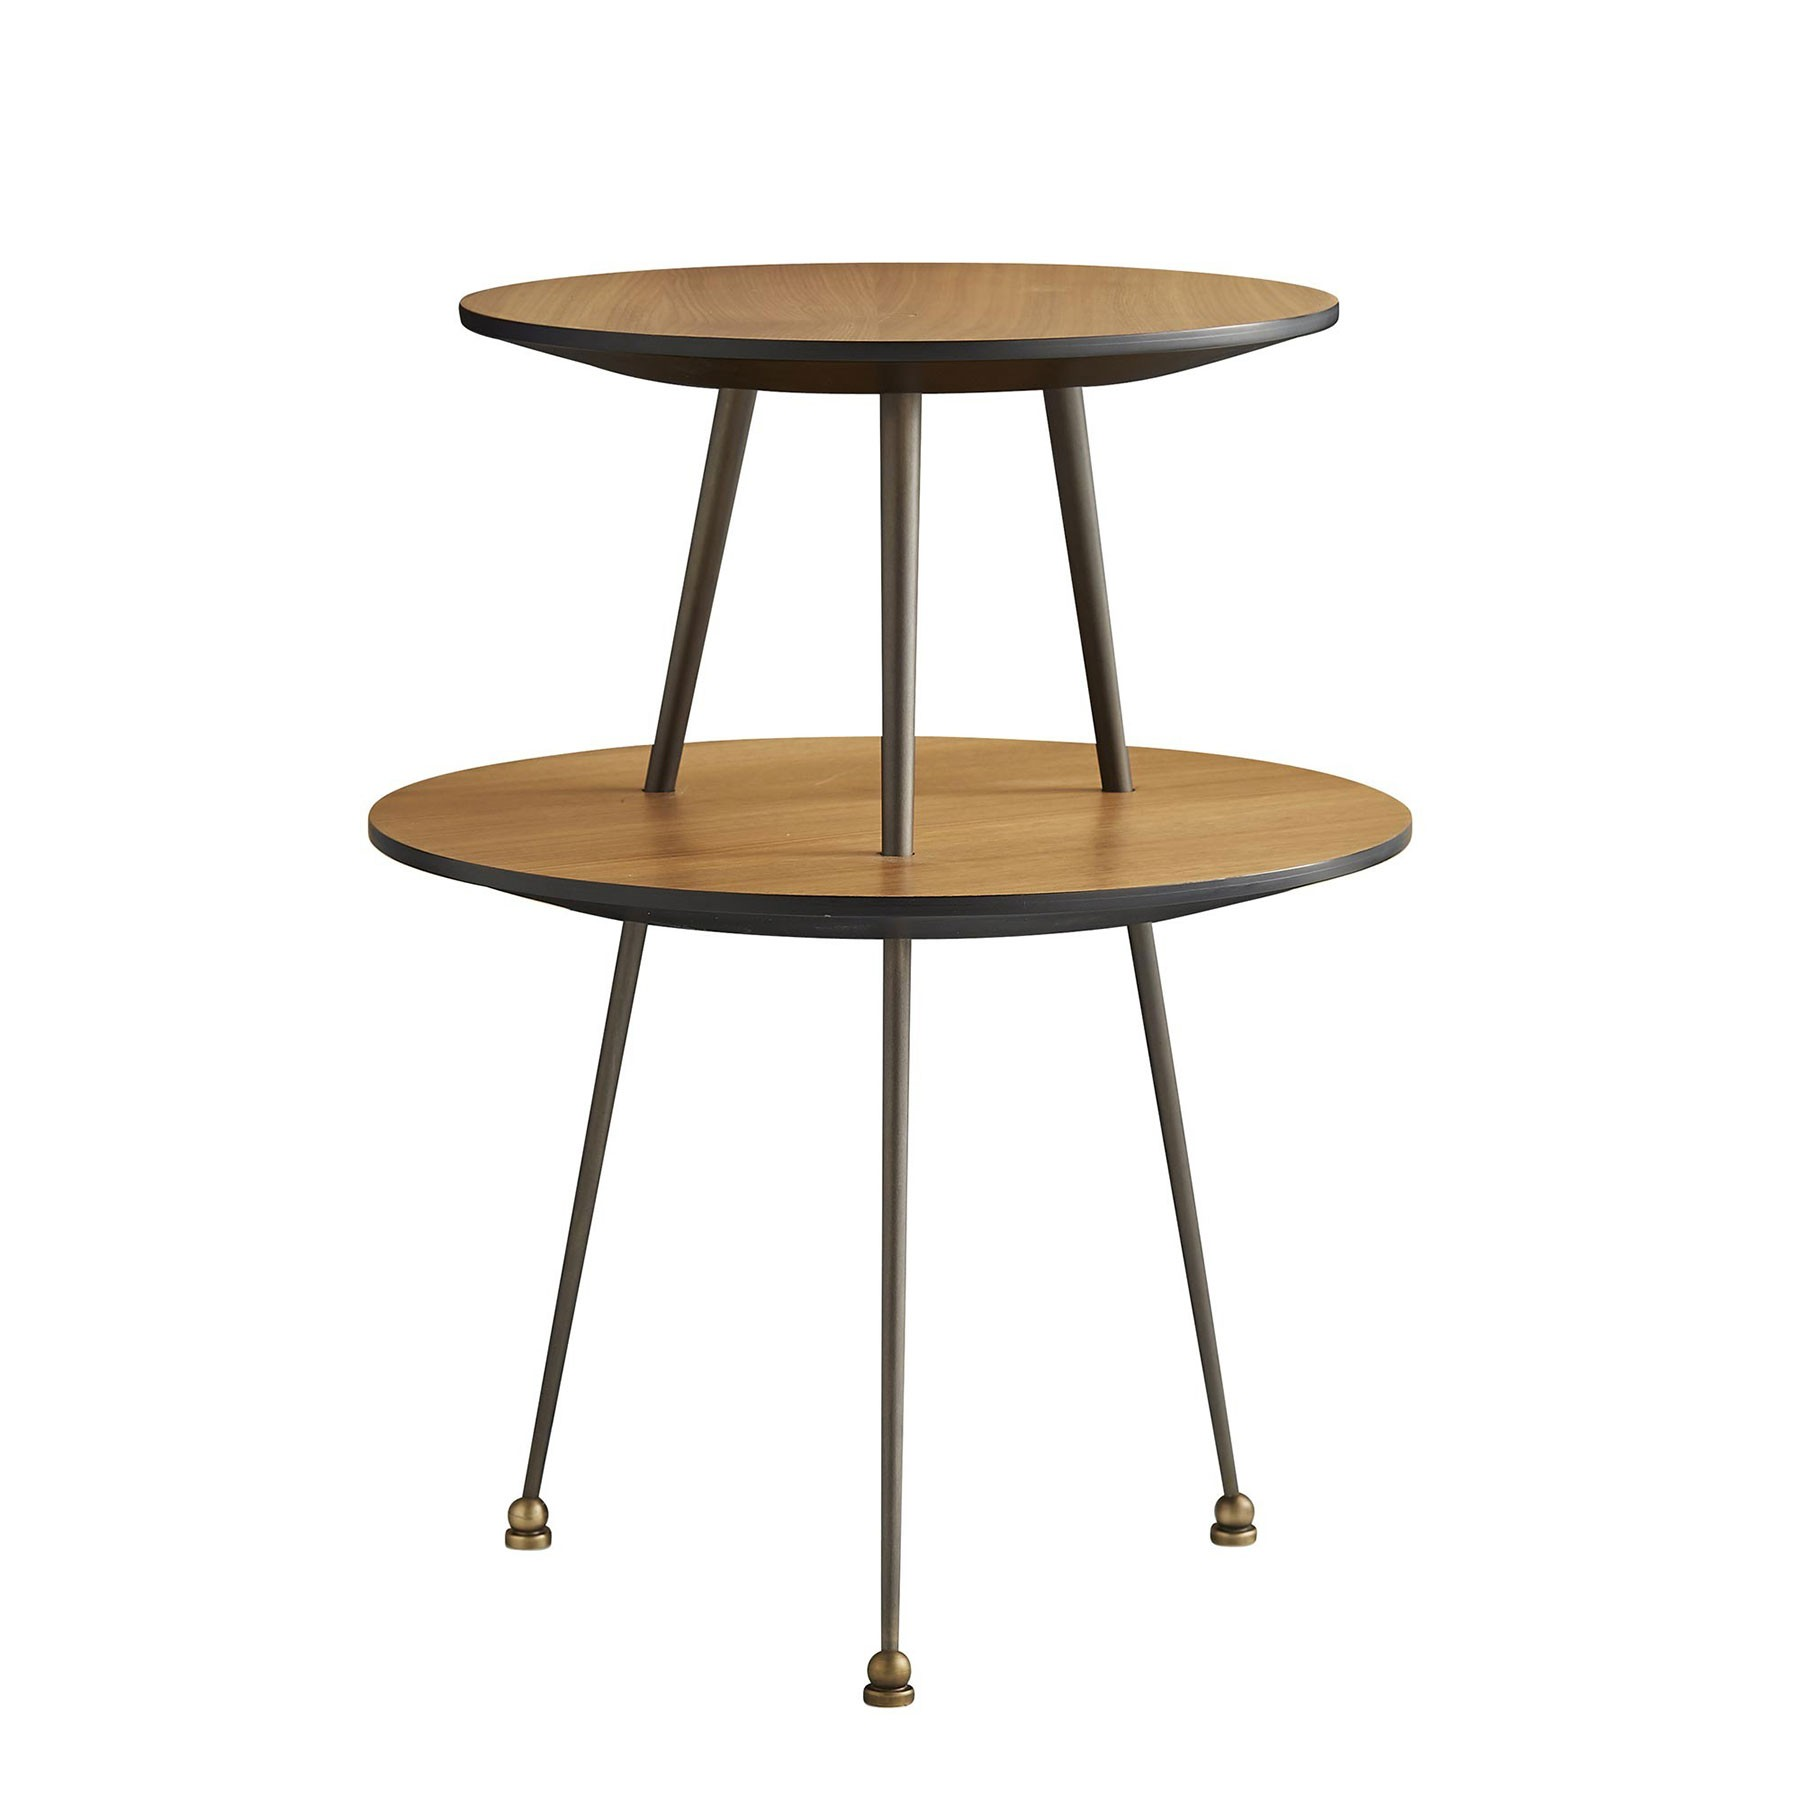 jolie accent table tiered midcentury modern arteriors metal pub height kitchen plant stand garden beer cooler free coffee chest white round nesting tables vintage scandinavian